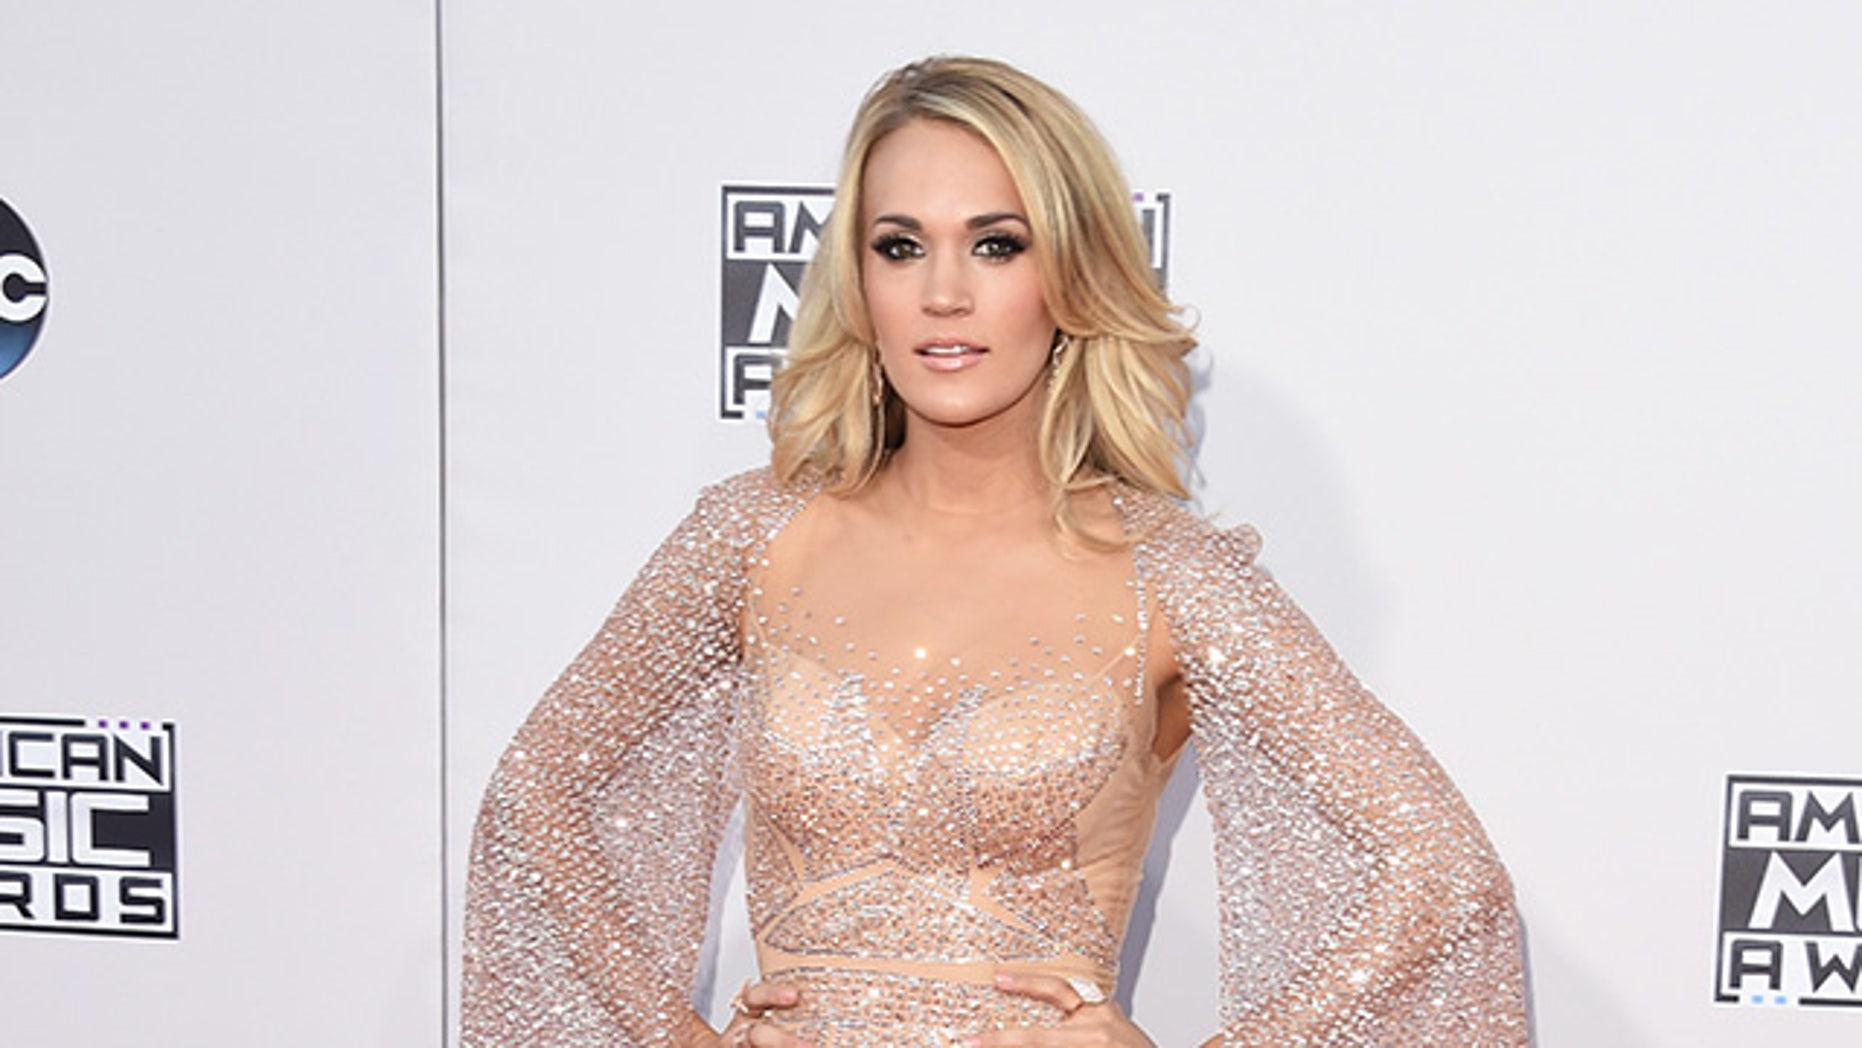 LOS ANGELES, CA - NOVEMBER 22:  Recording artist Carrie Underwood attends the 2015 American Music Awards at Microsoft Theater on November 22, 2015 in Los Angeles, California.  (Photo by Jason Merritt/Getty Images)